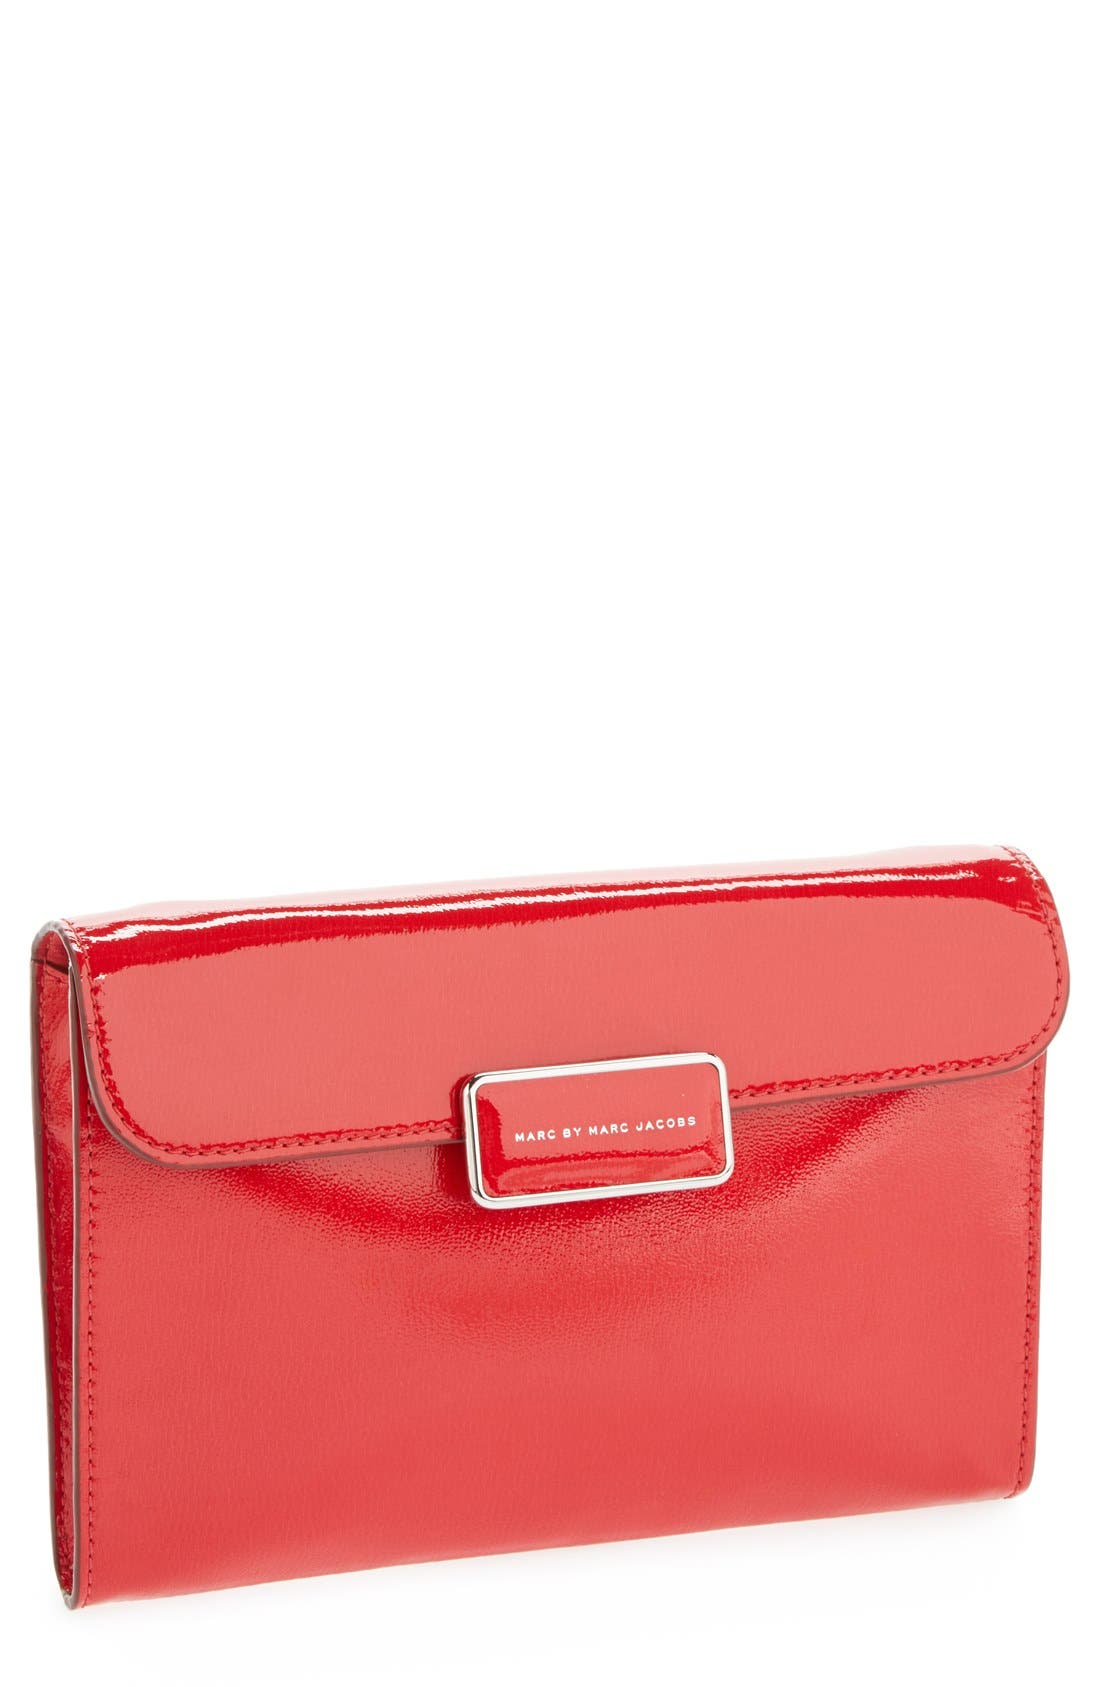 Alternate Image 1 Selected - MARC BY MARC JACOBS 'Pegg' Patent Leather Clutch